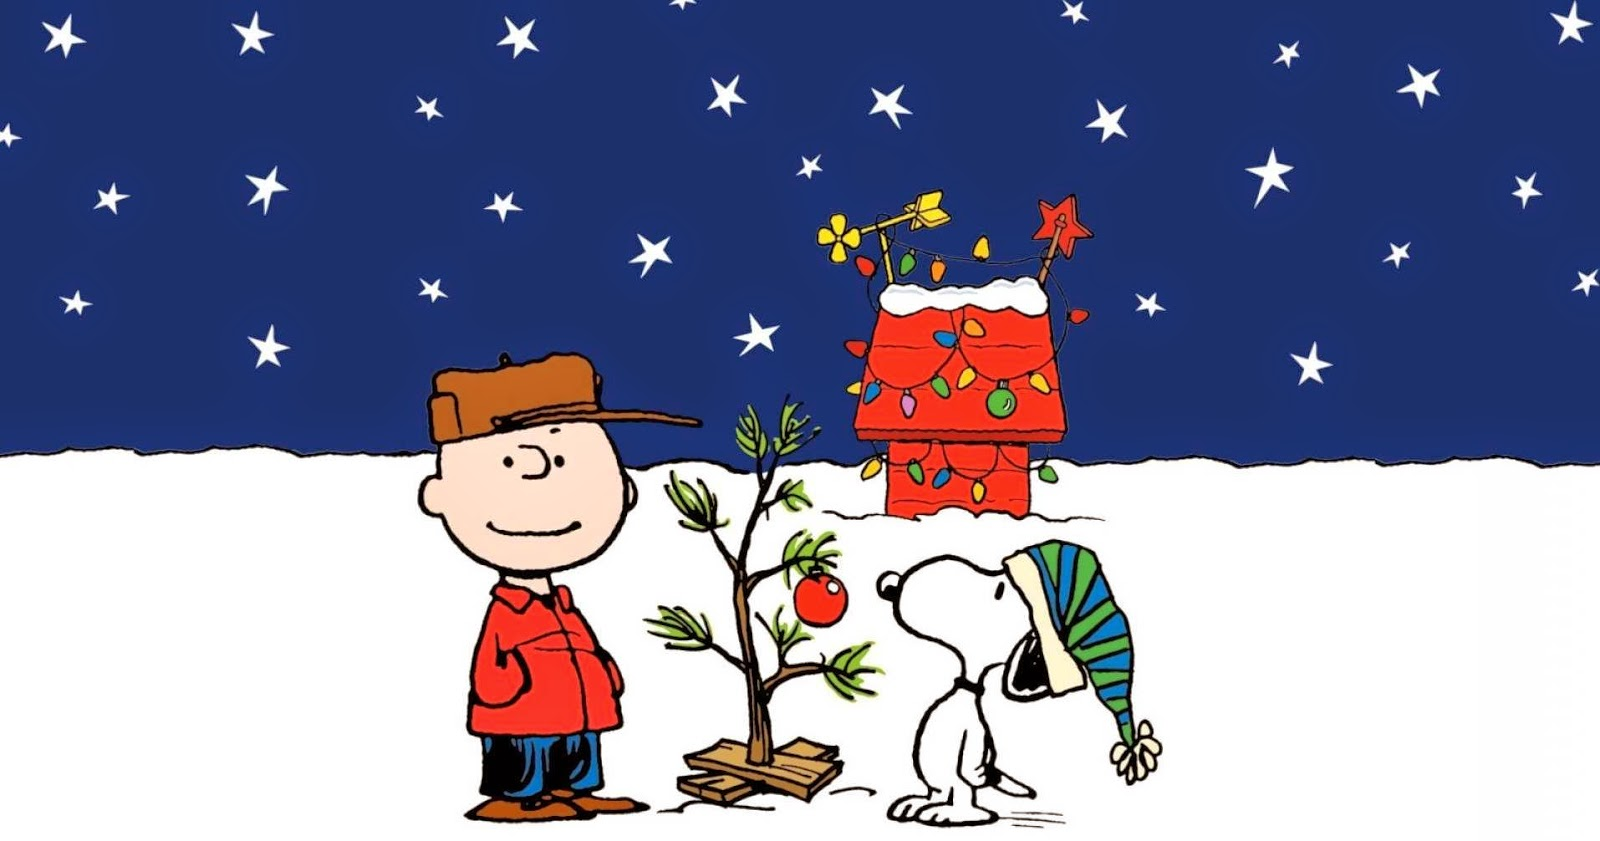 hight resolution of charlie brown christmas clip art the